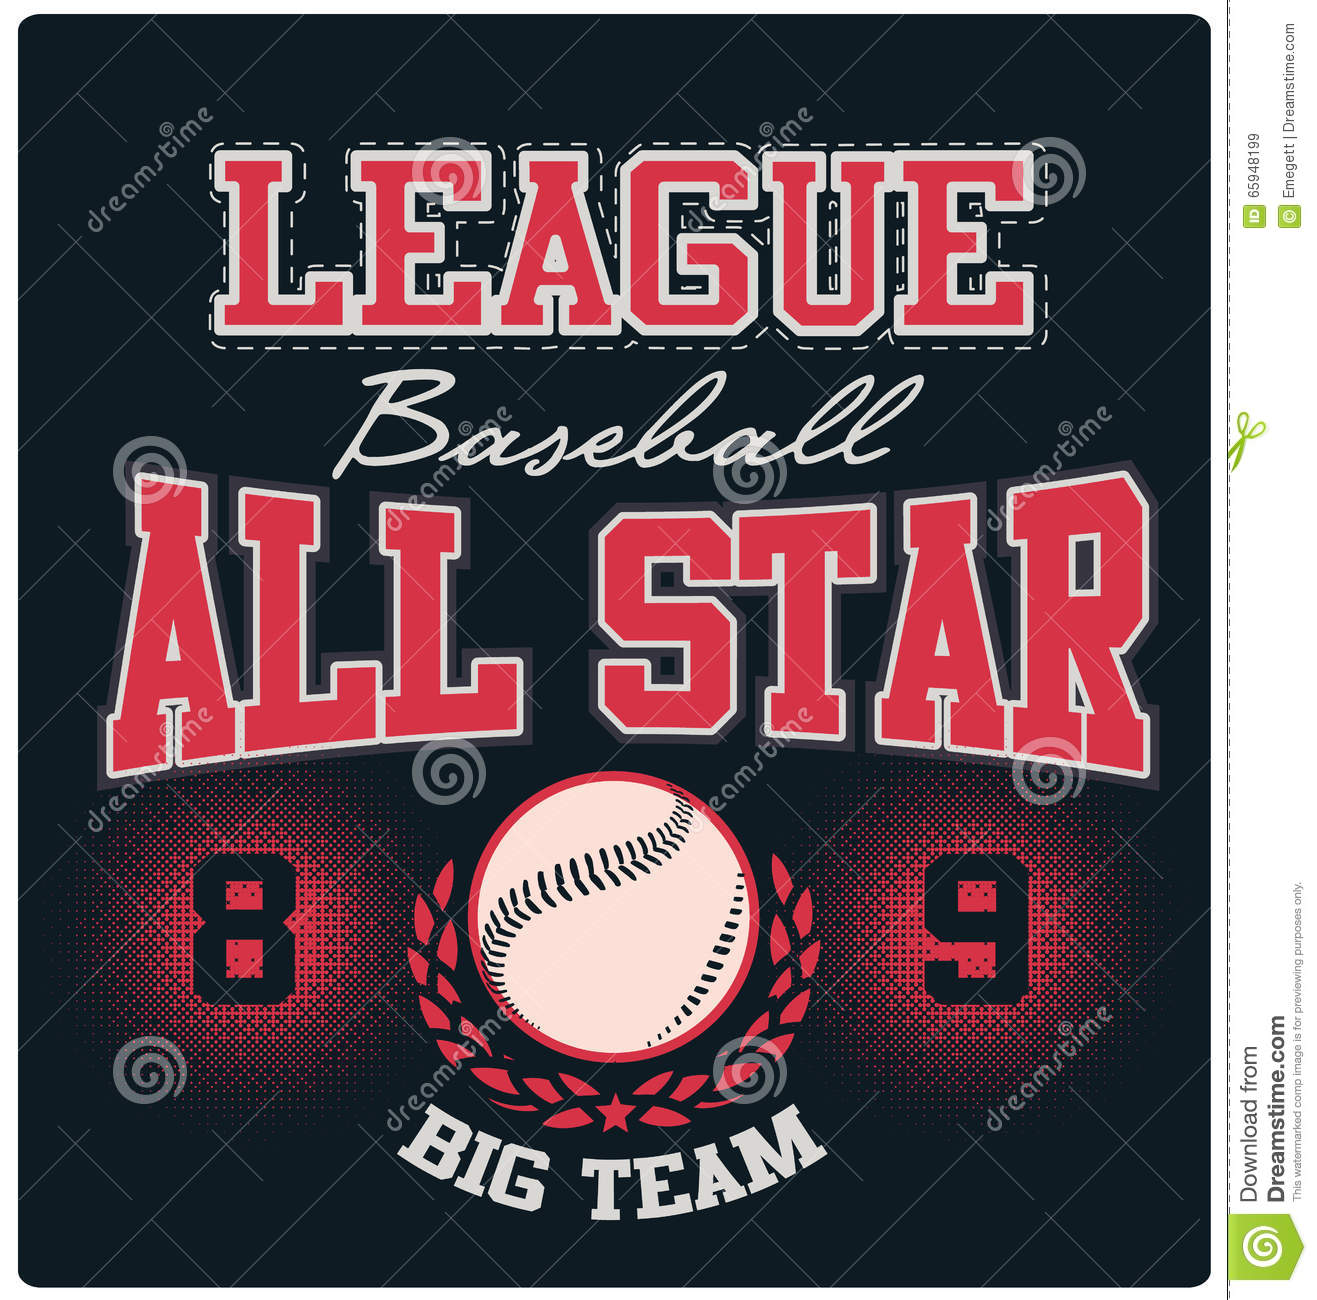 Base-ball Logo Tee Graphic Design All-Star